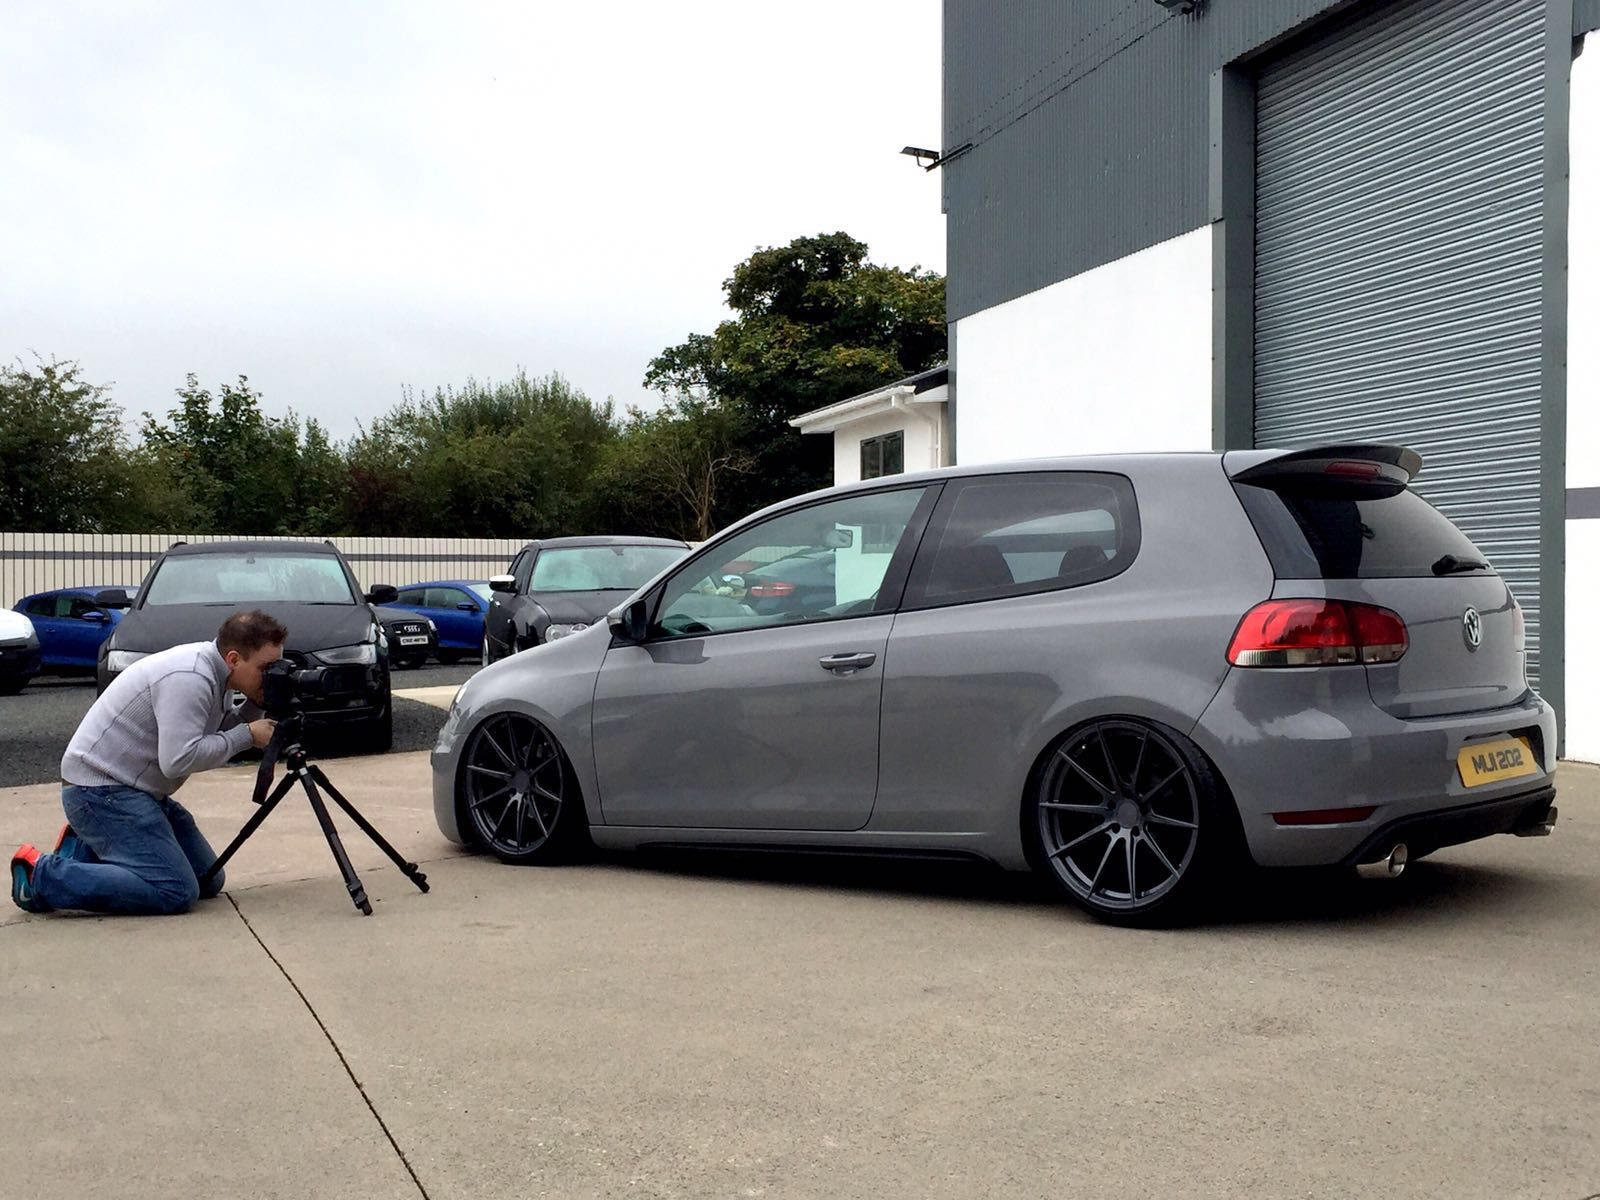 Golf colour change and airbagged for Top Gear NI